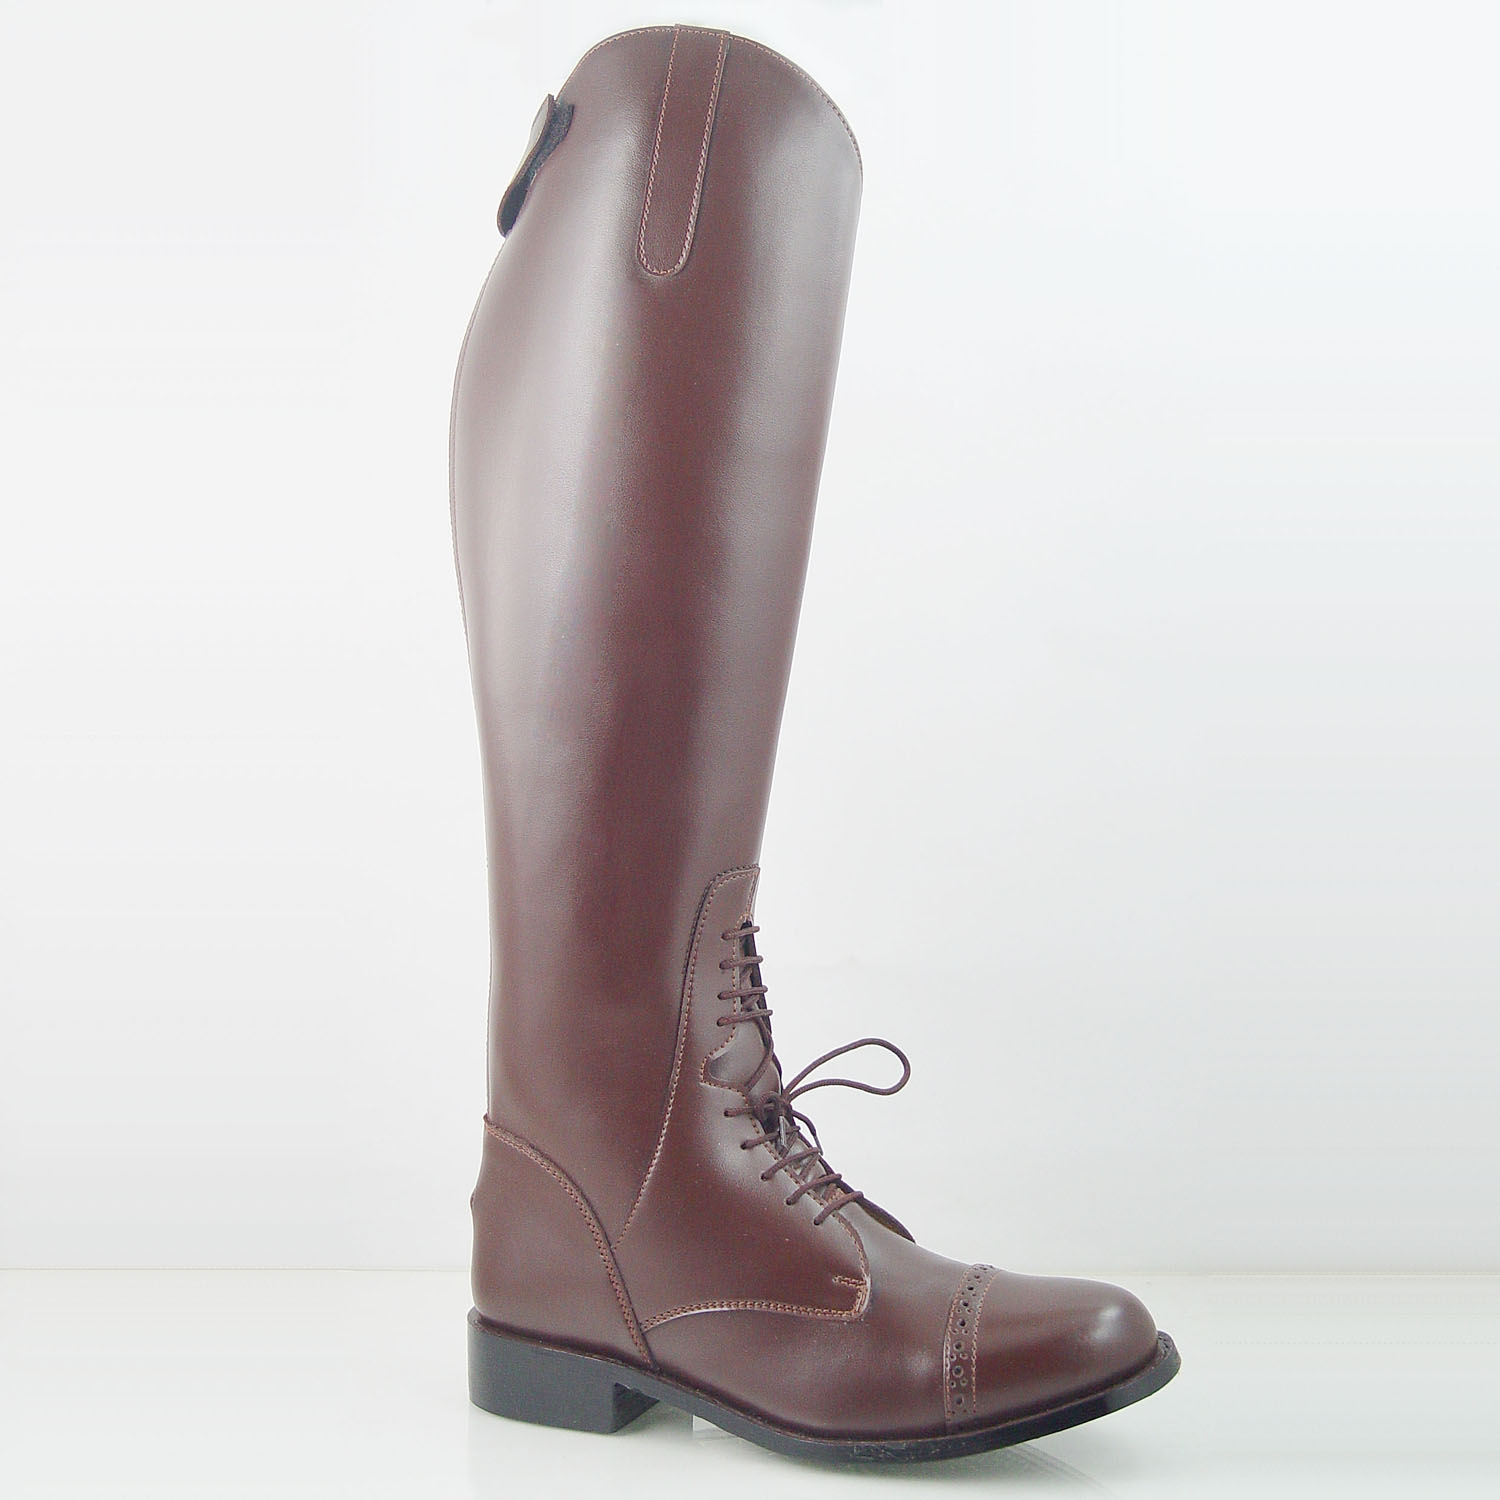 Unique Dublin Pinnacle Horse Riding Long Country Boots Womens Winter Walking